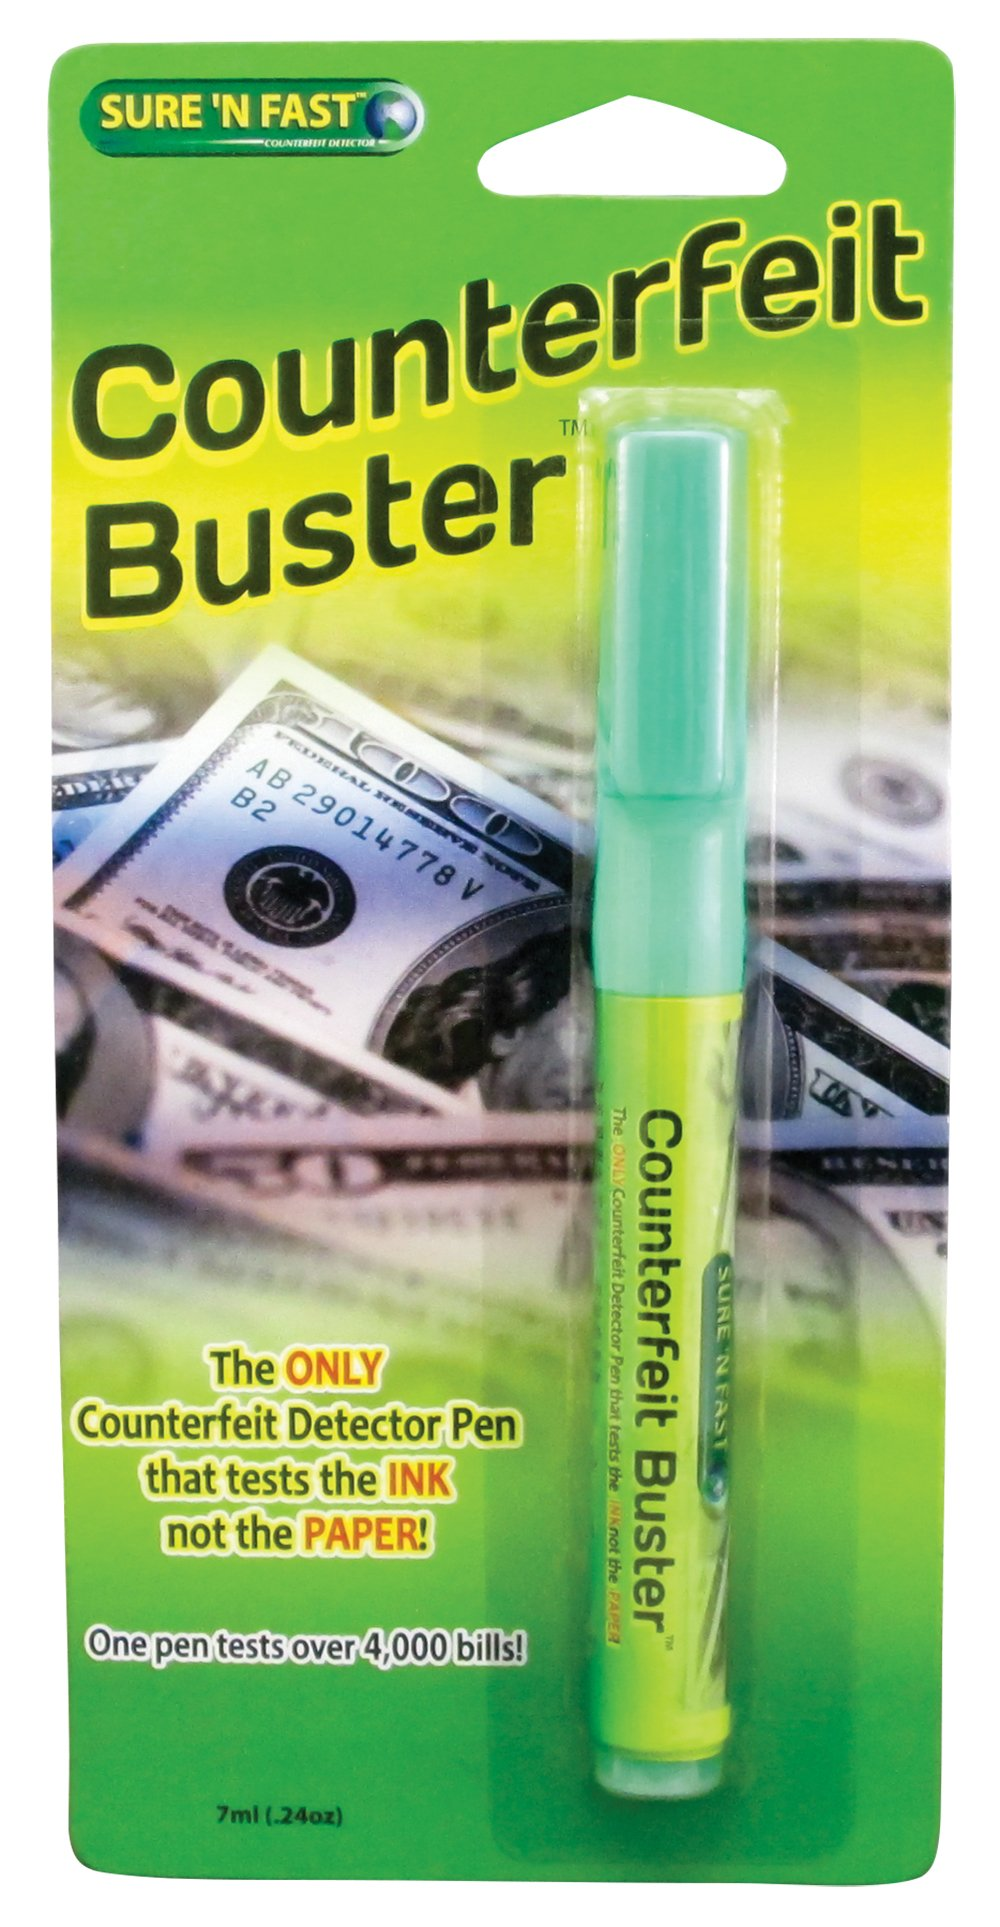 Sure N Fast Counterfeit Buster Pen 7ml